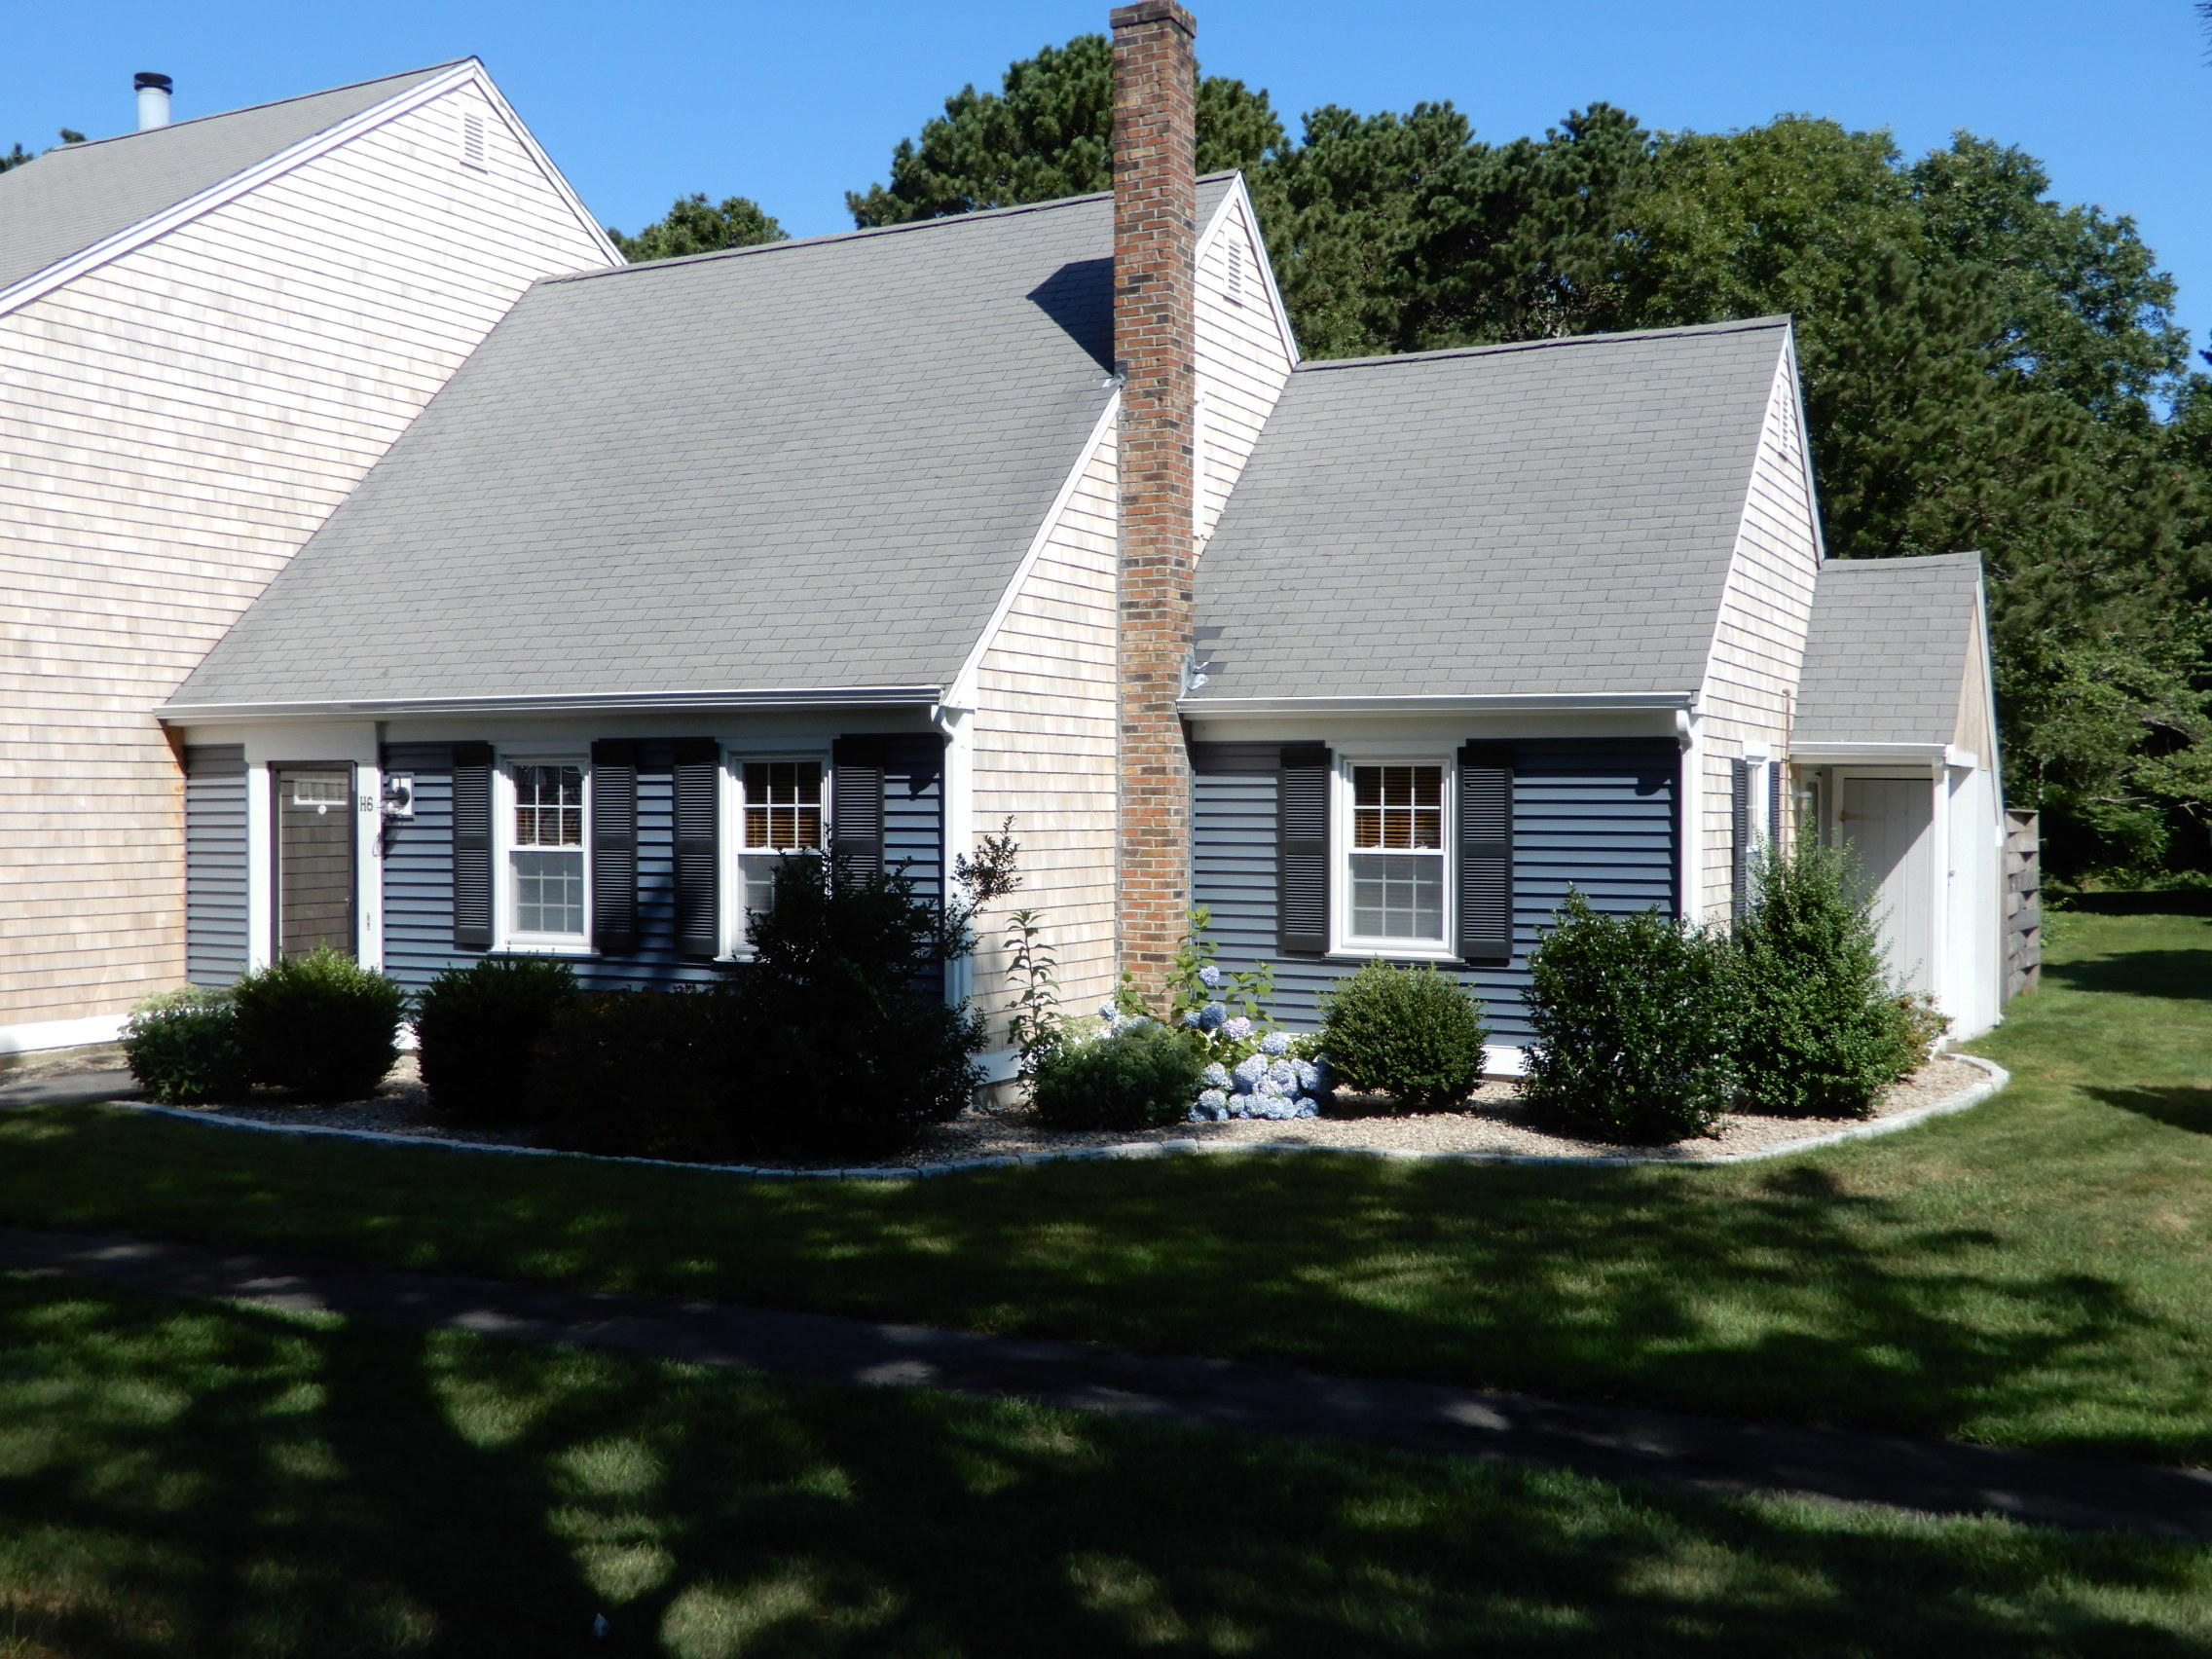 248 Camp Street, West Yarmouth MA, 02673 details